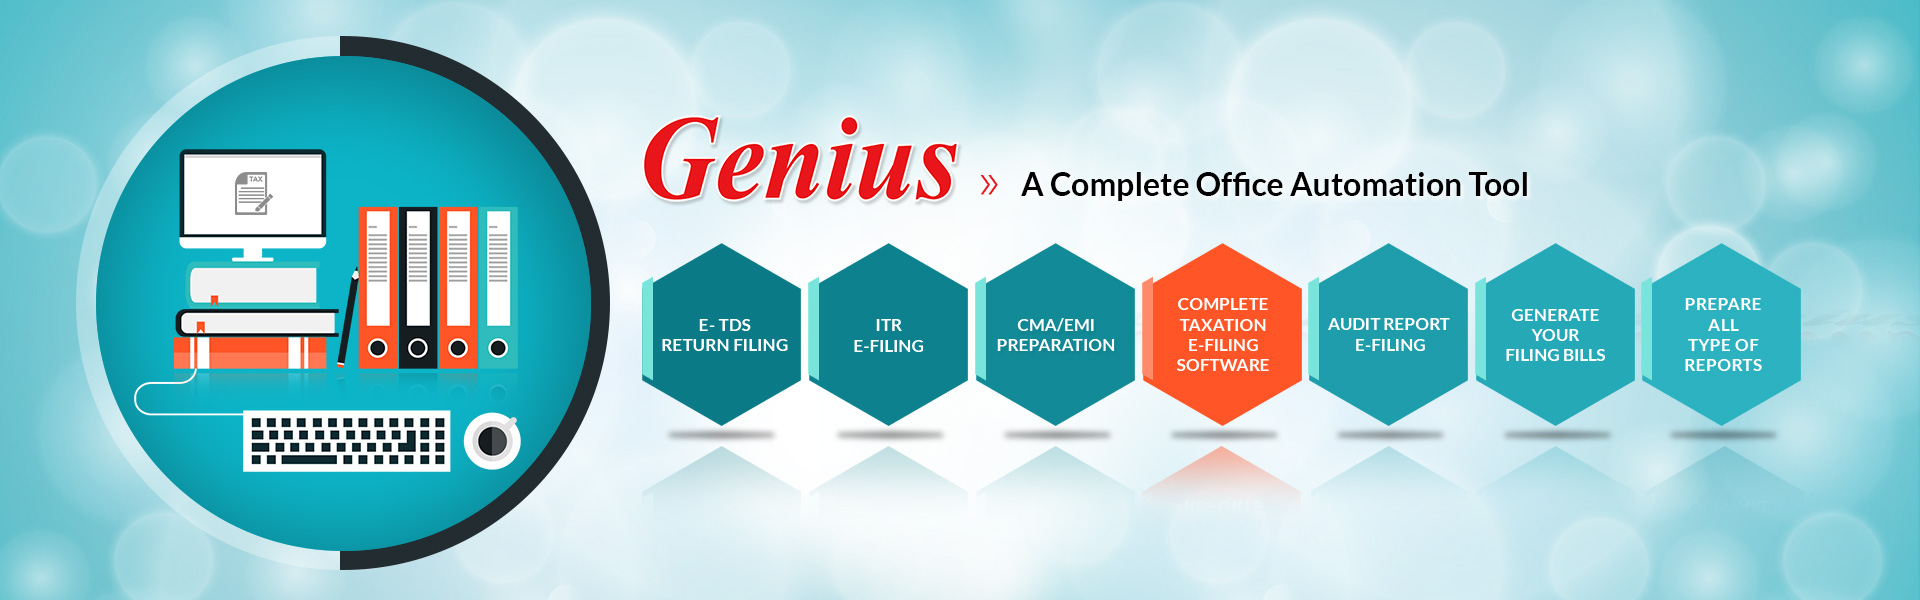 Genius Features